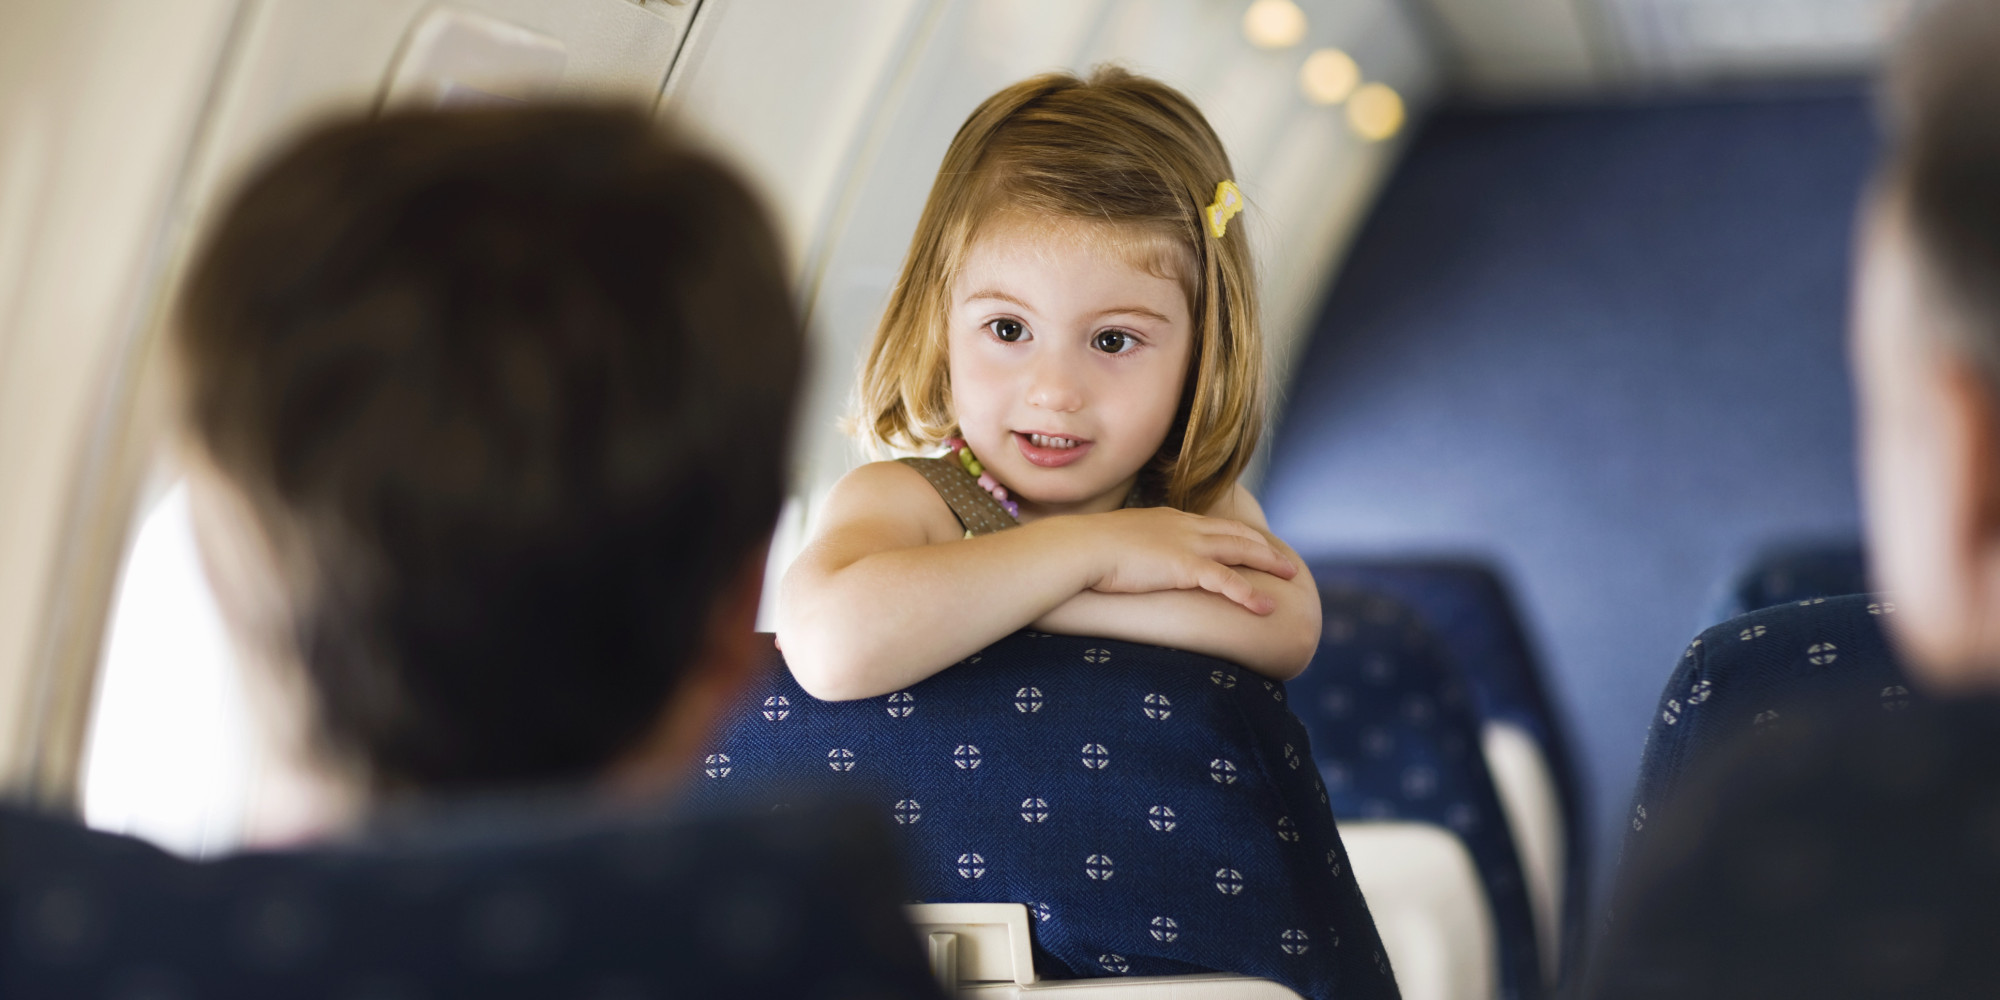 Tips On Traveling With A 2 Year Old On A Plane